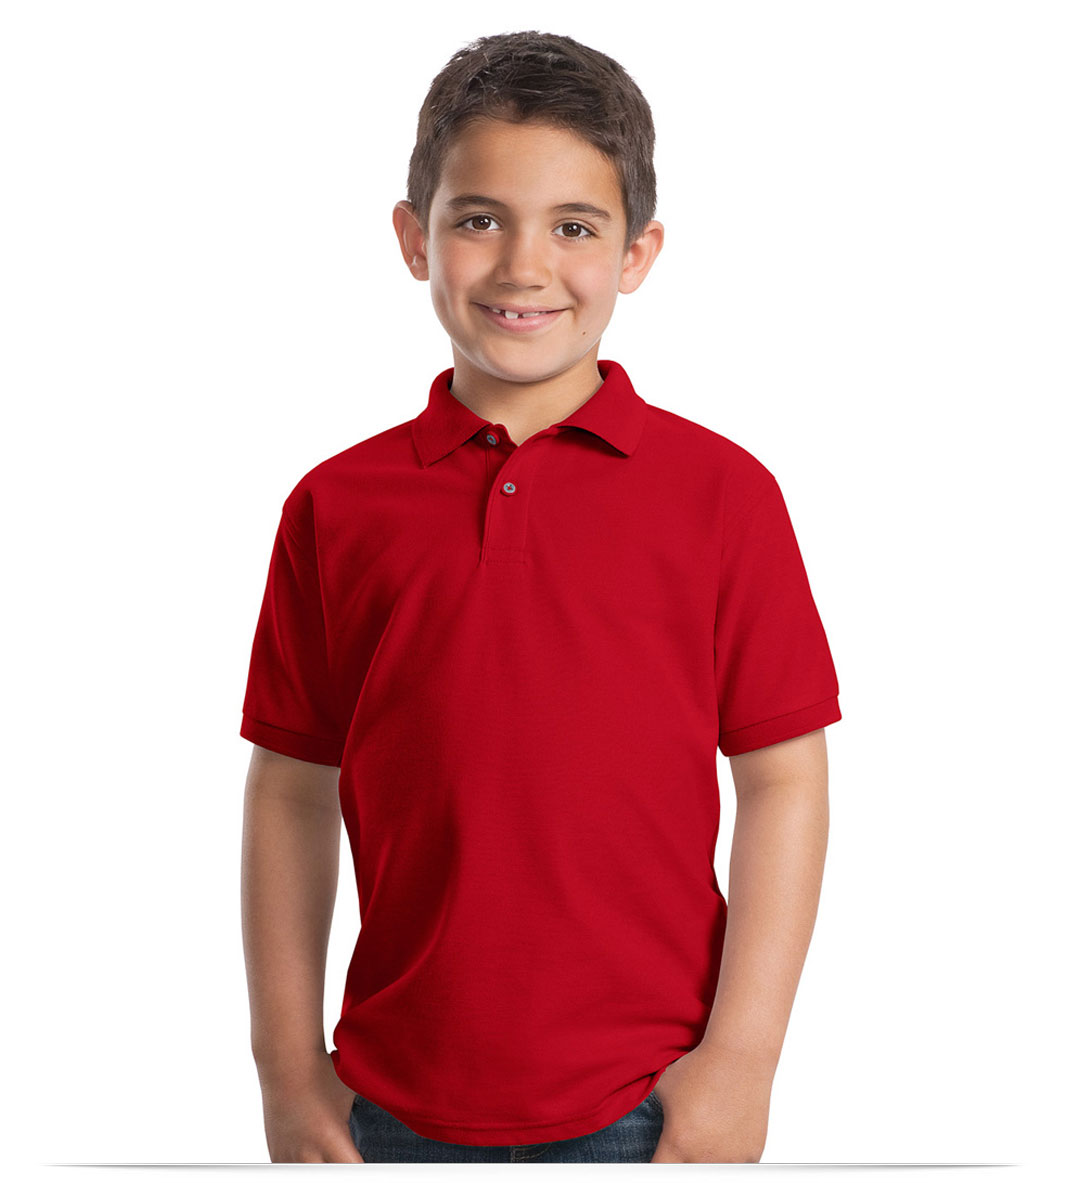 Customize Kid's School Shirt 65/35 Cotton/Poly